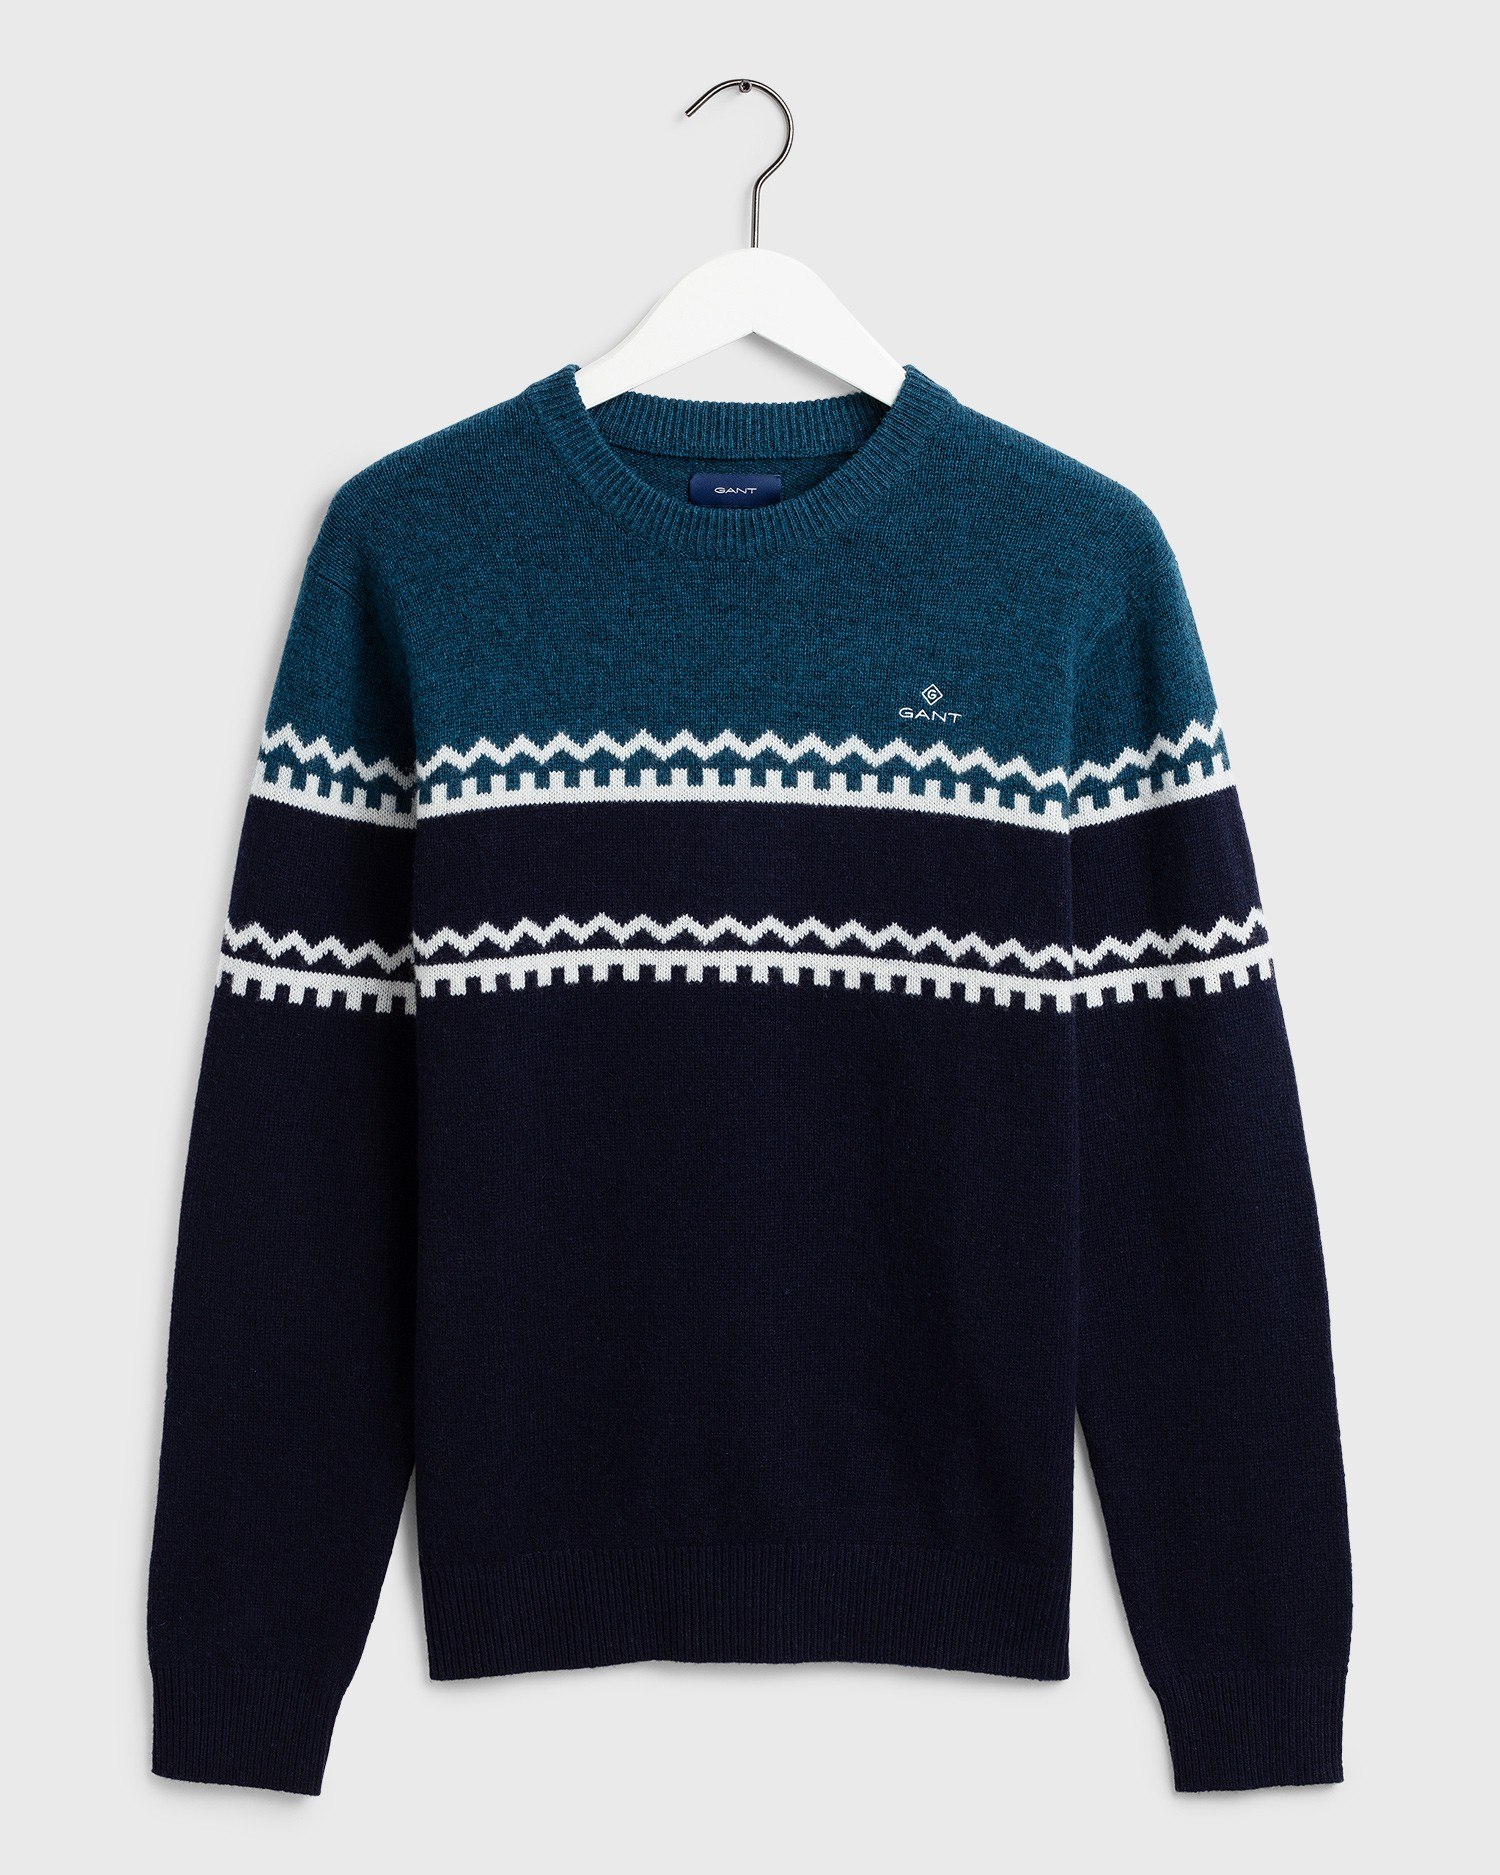 GANT Men's Holiday Stripe Sweater - 8010033